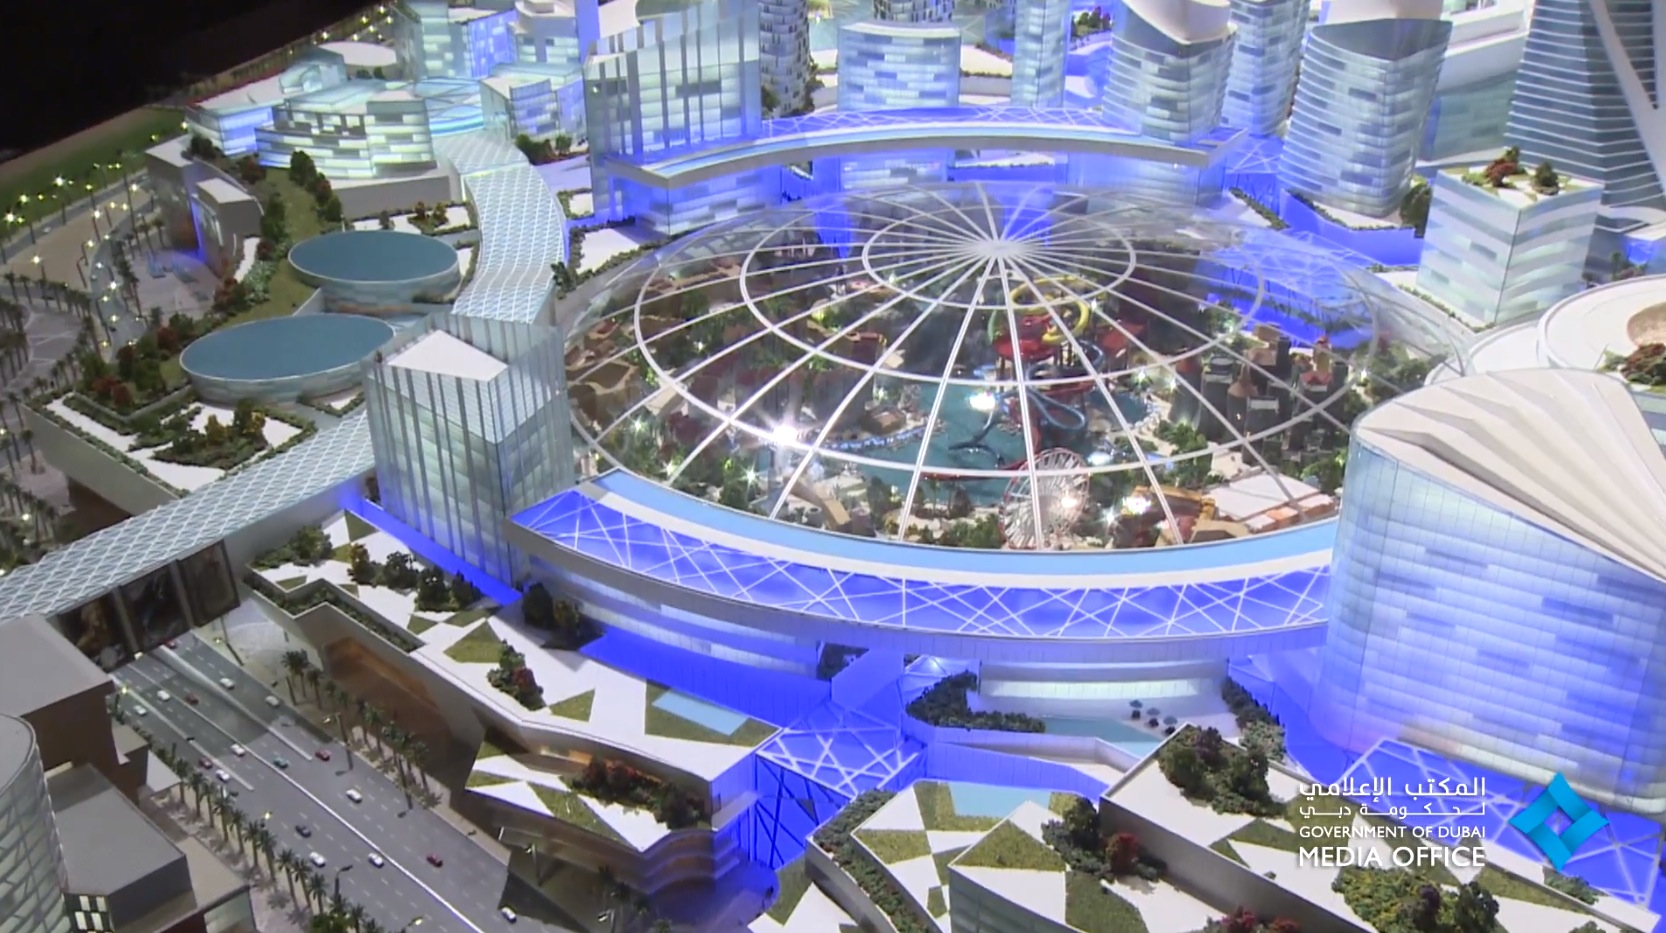 Park Auto Mall >> UAE Will Build The World's First Air-Conditioned City in Dubai - autoevolution